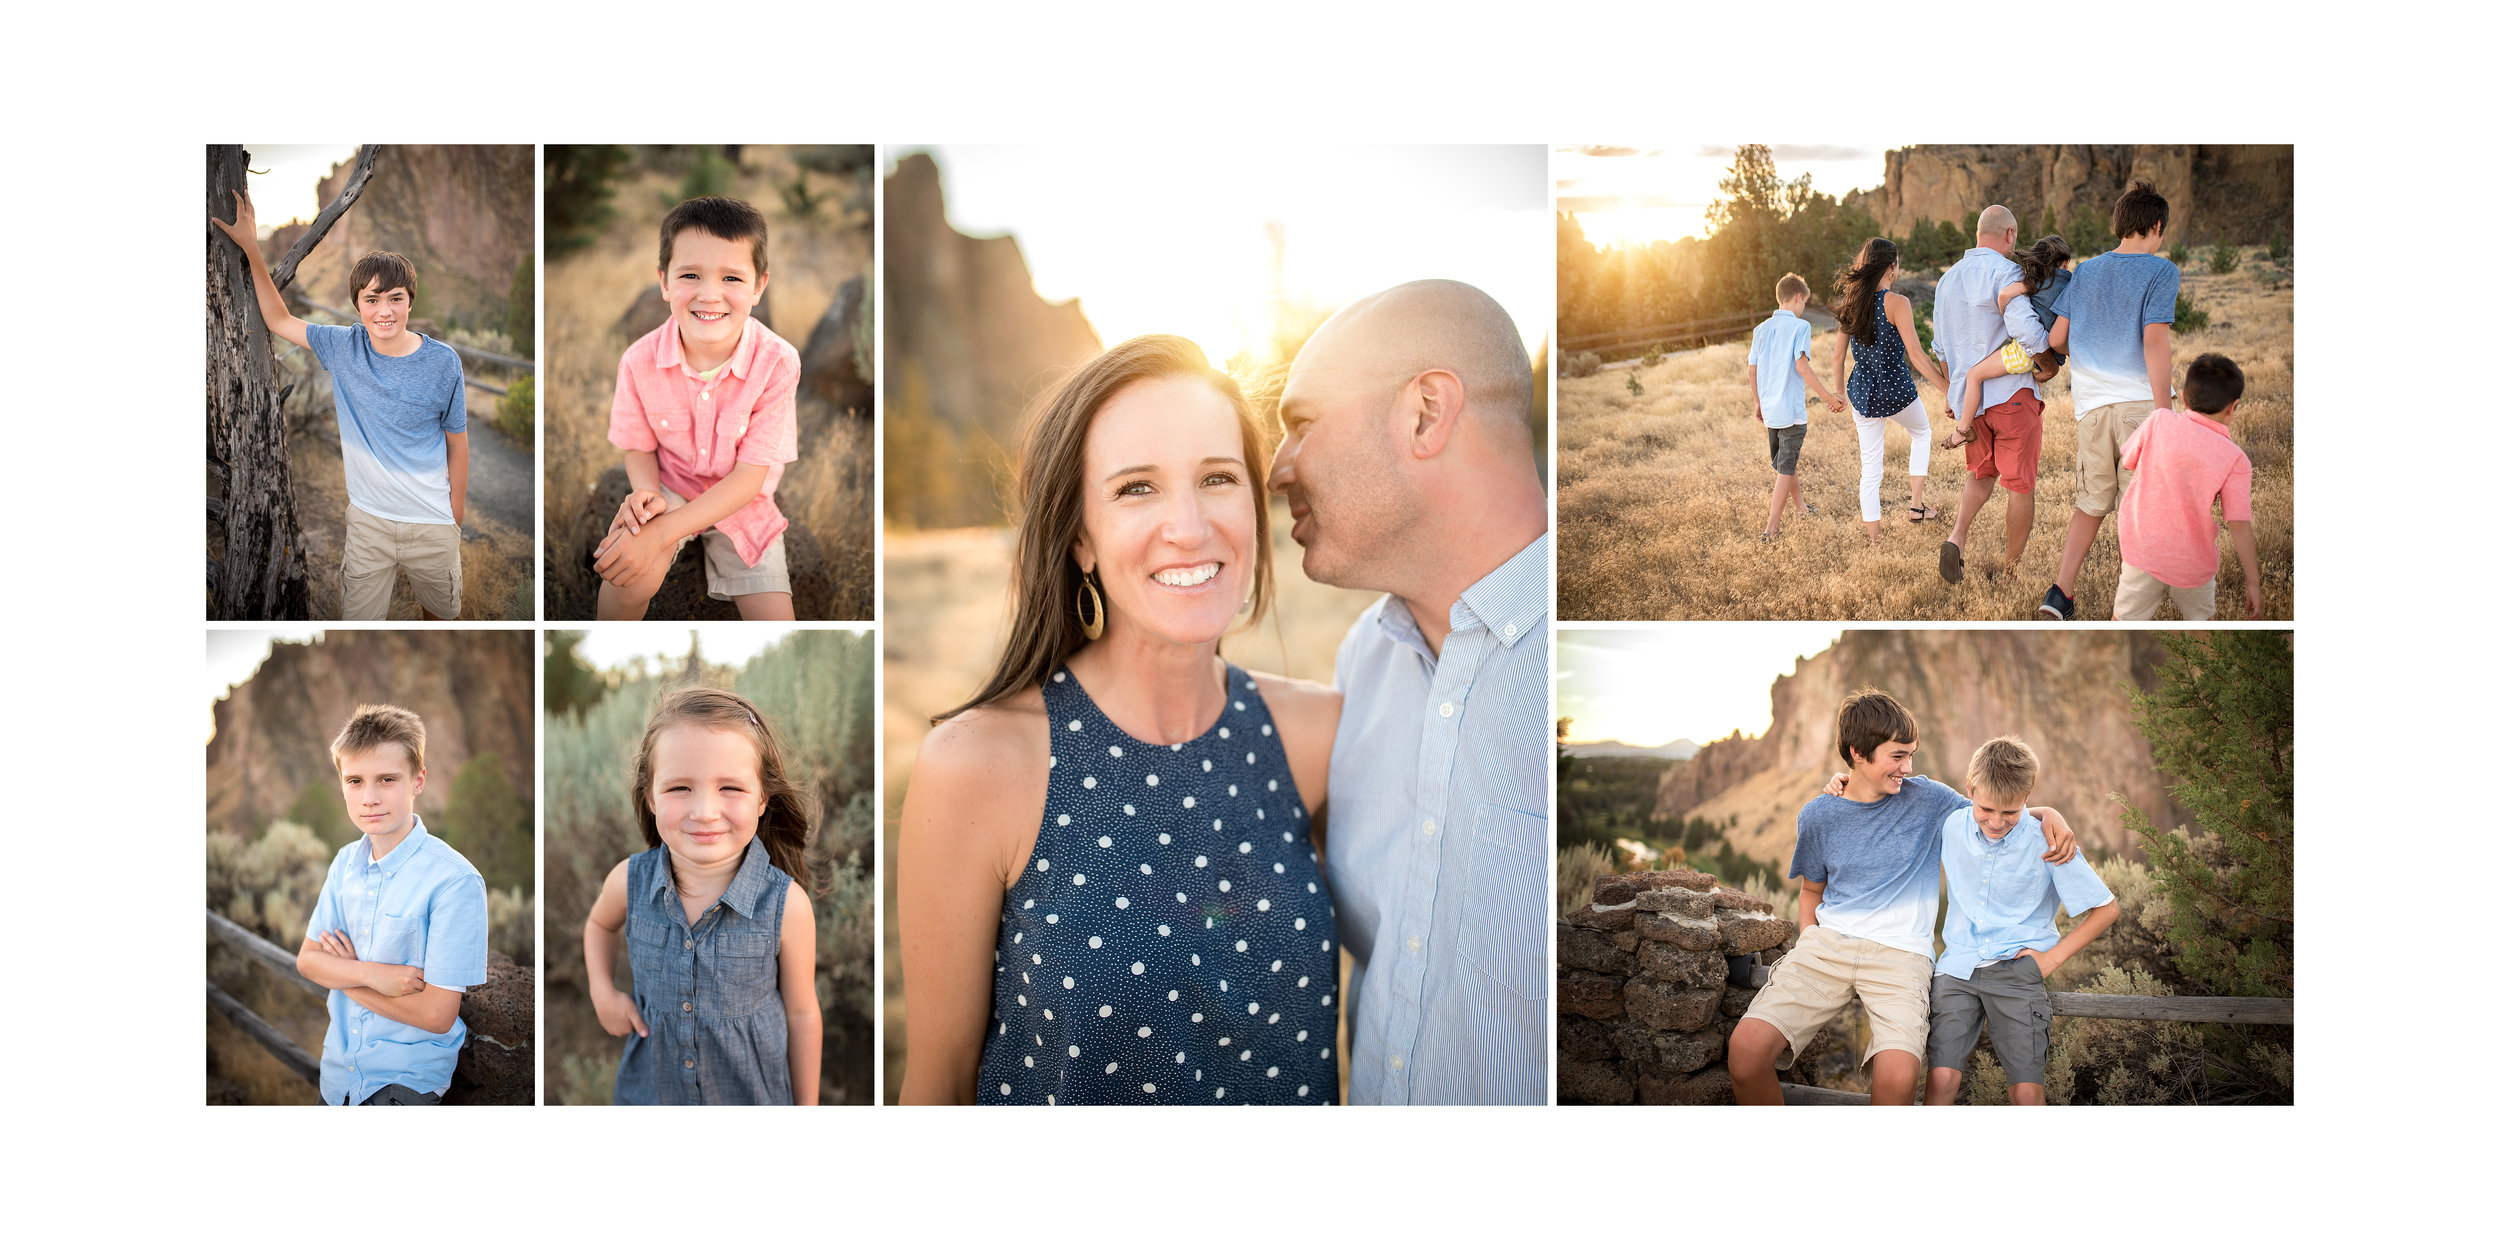 photographer in Great Falls, Montana